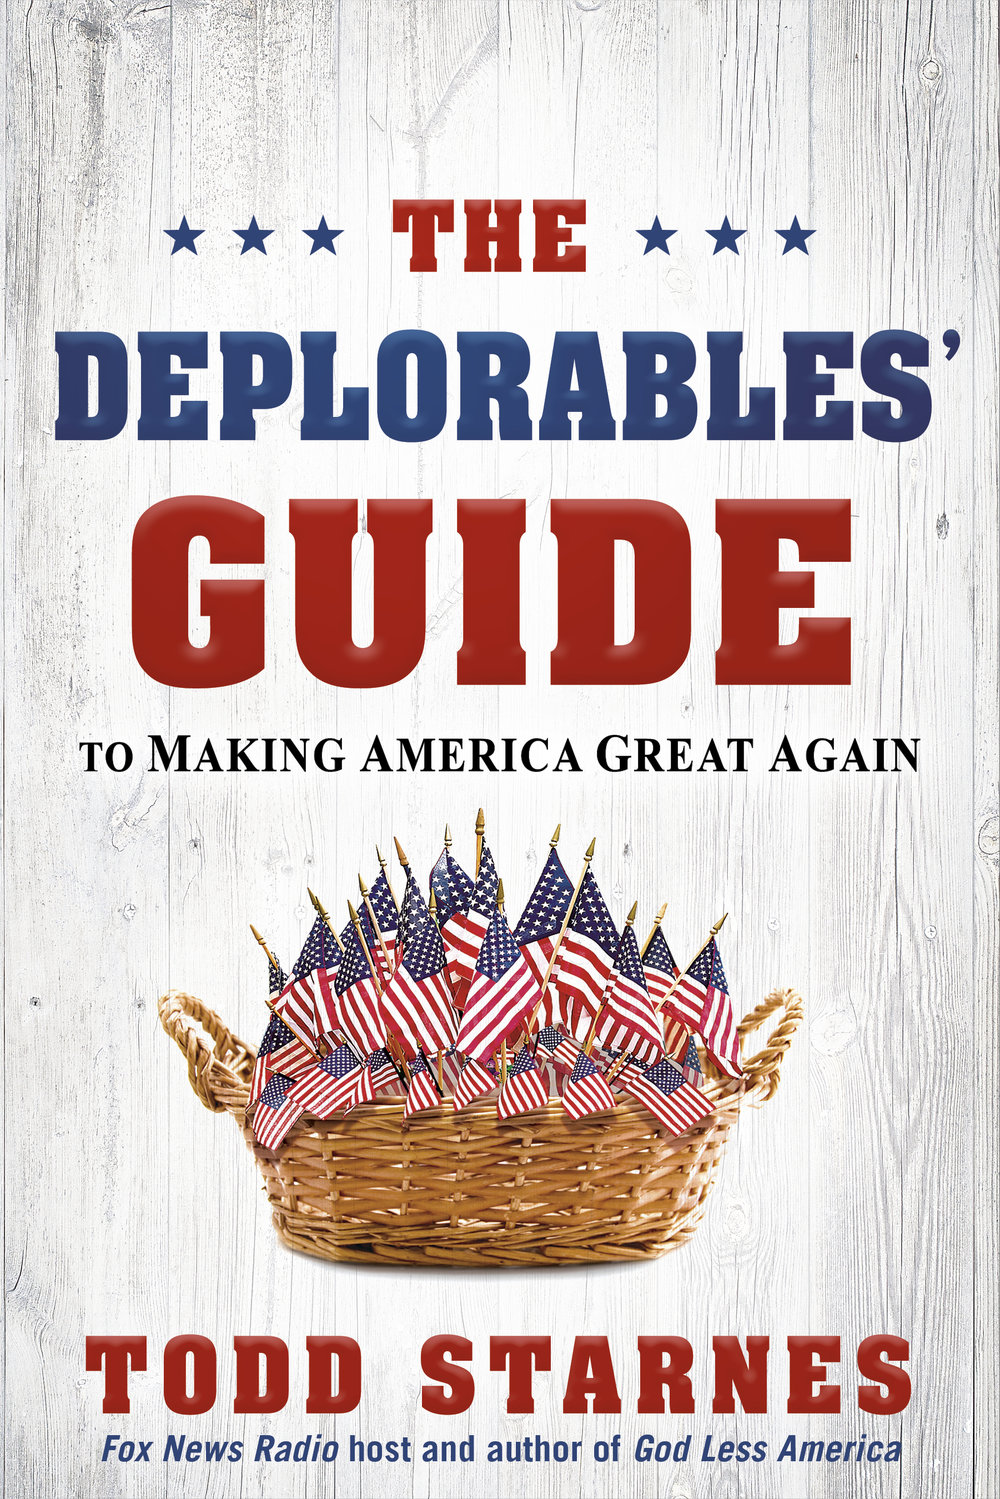 Click on the image to get a personally signed copy of Todd's new bestseller!